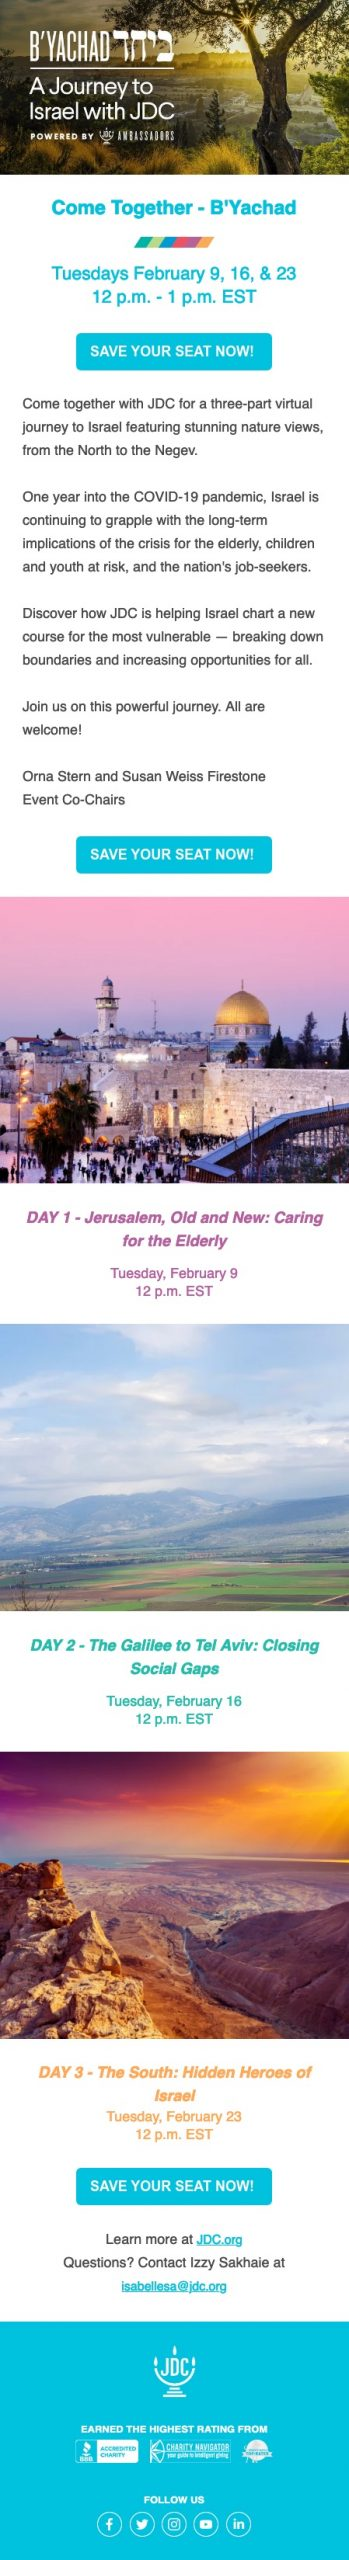 Join JDC for a 3 Part Virtual Journey to Israel - B'Yachad